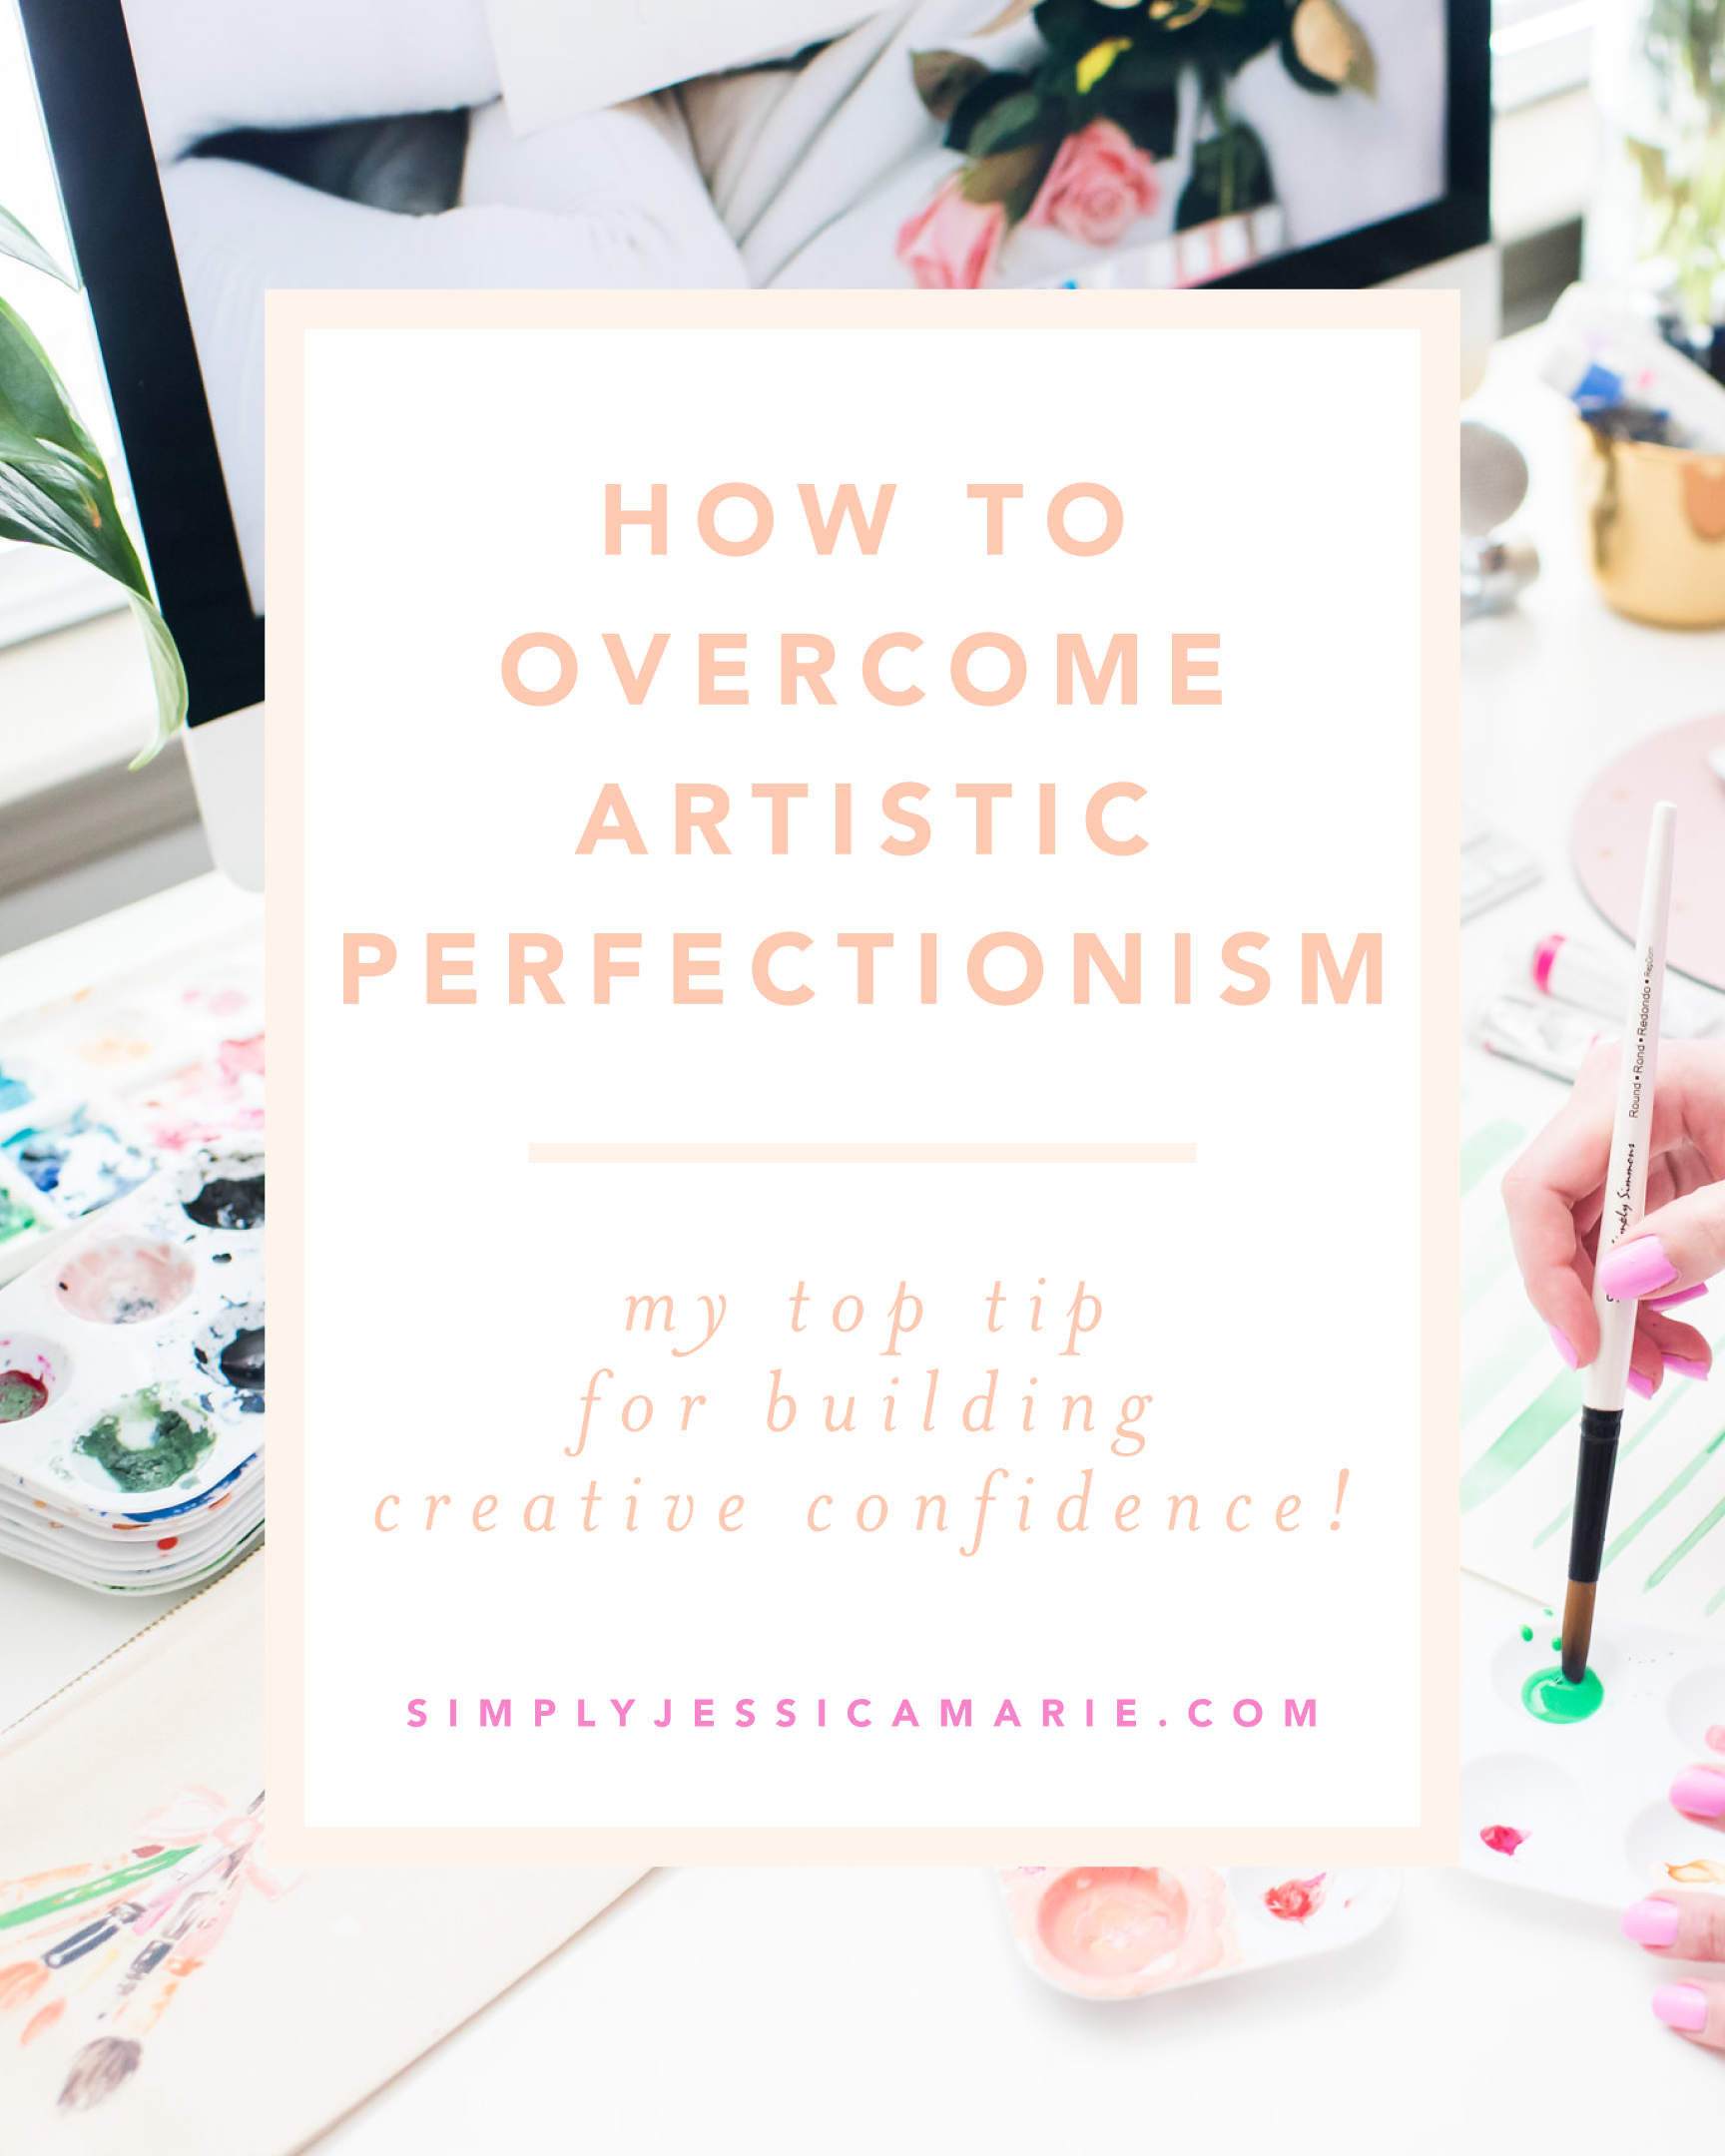 How to overcome artistic perfectionism - my top tip for building creative confidence! By Simply Jessica Marie   Photo by Callie Lindsey